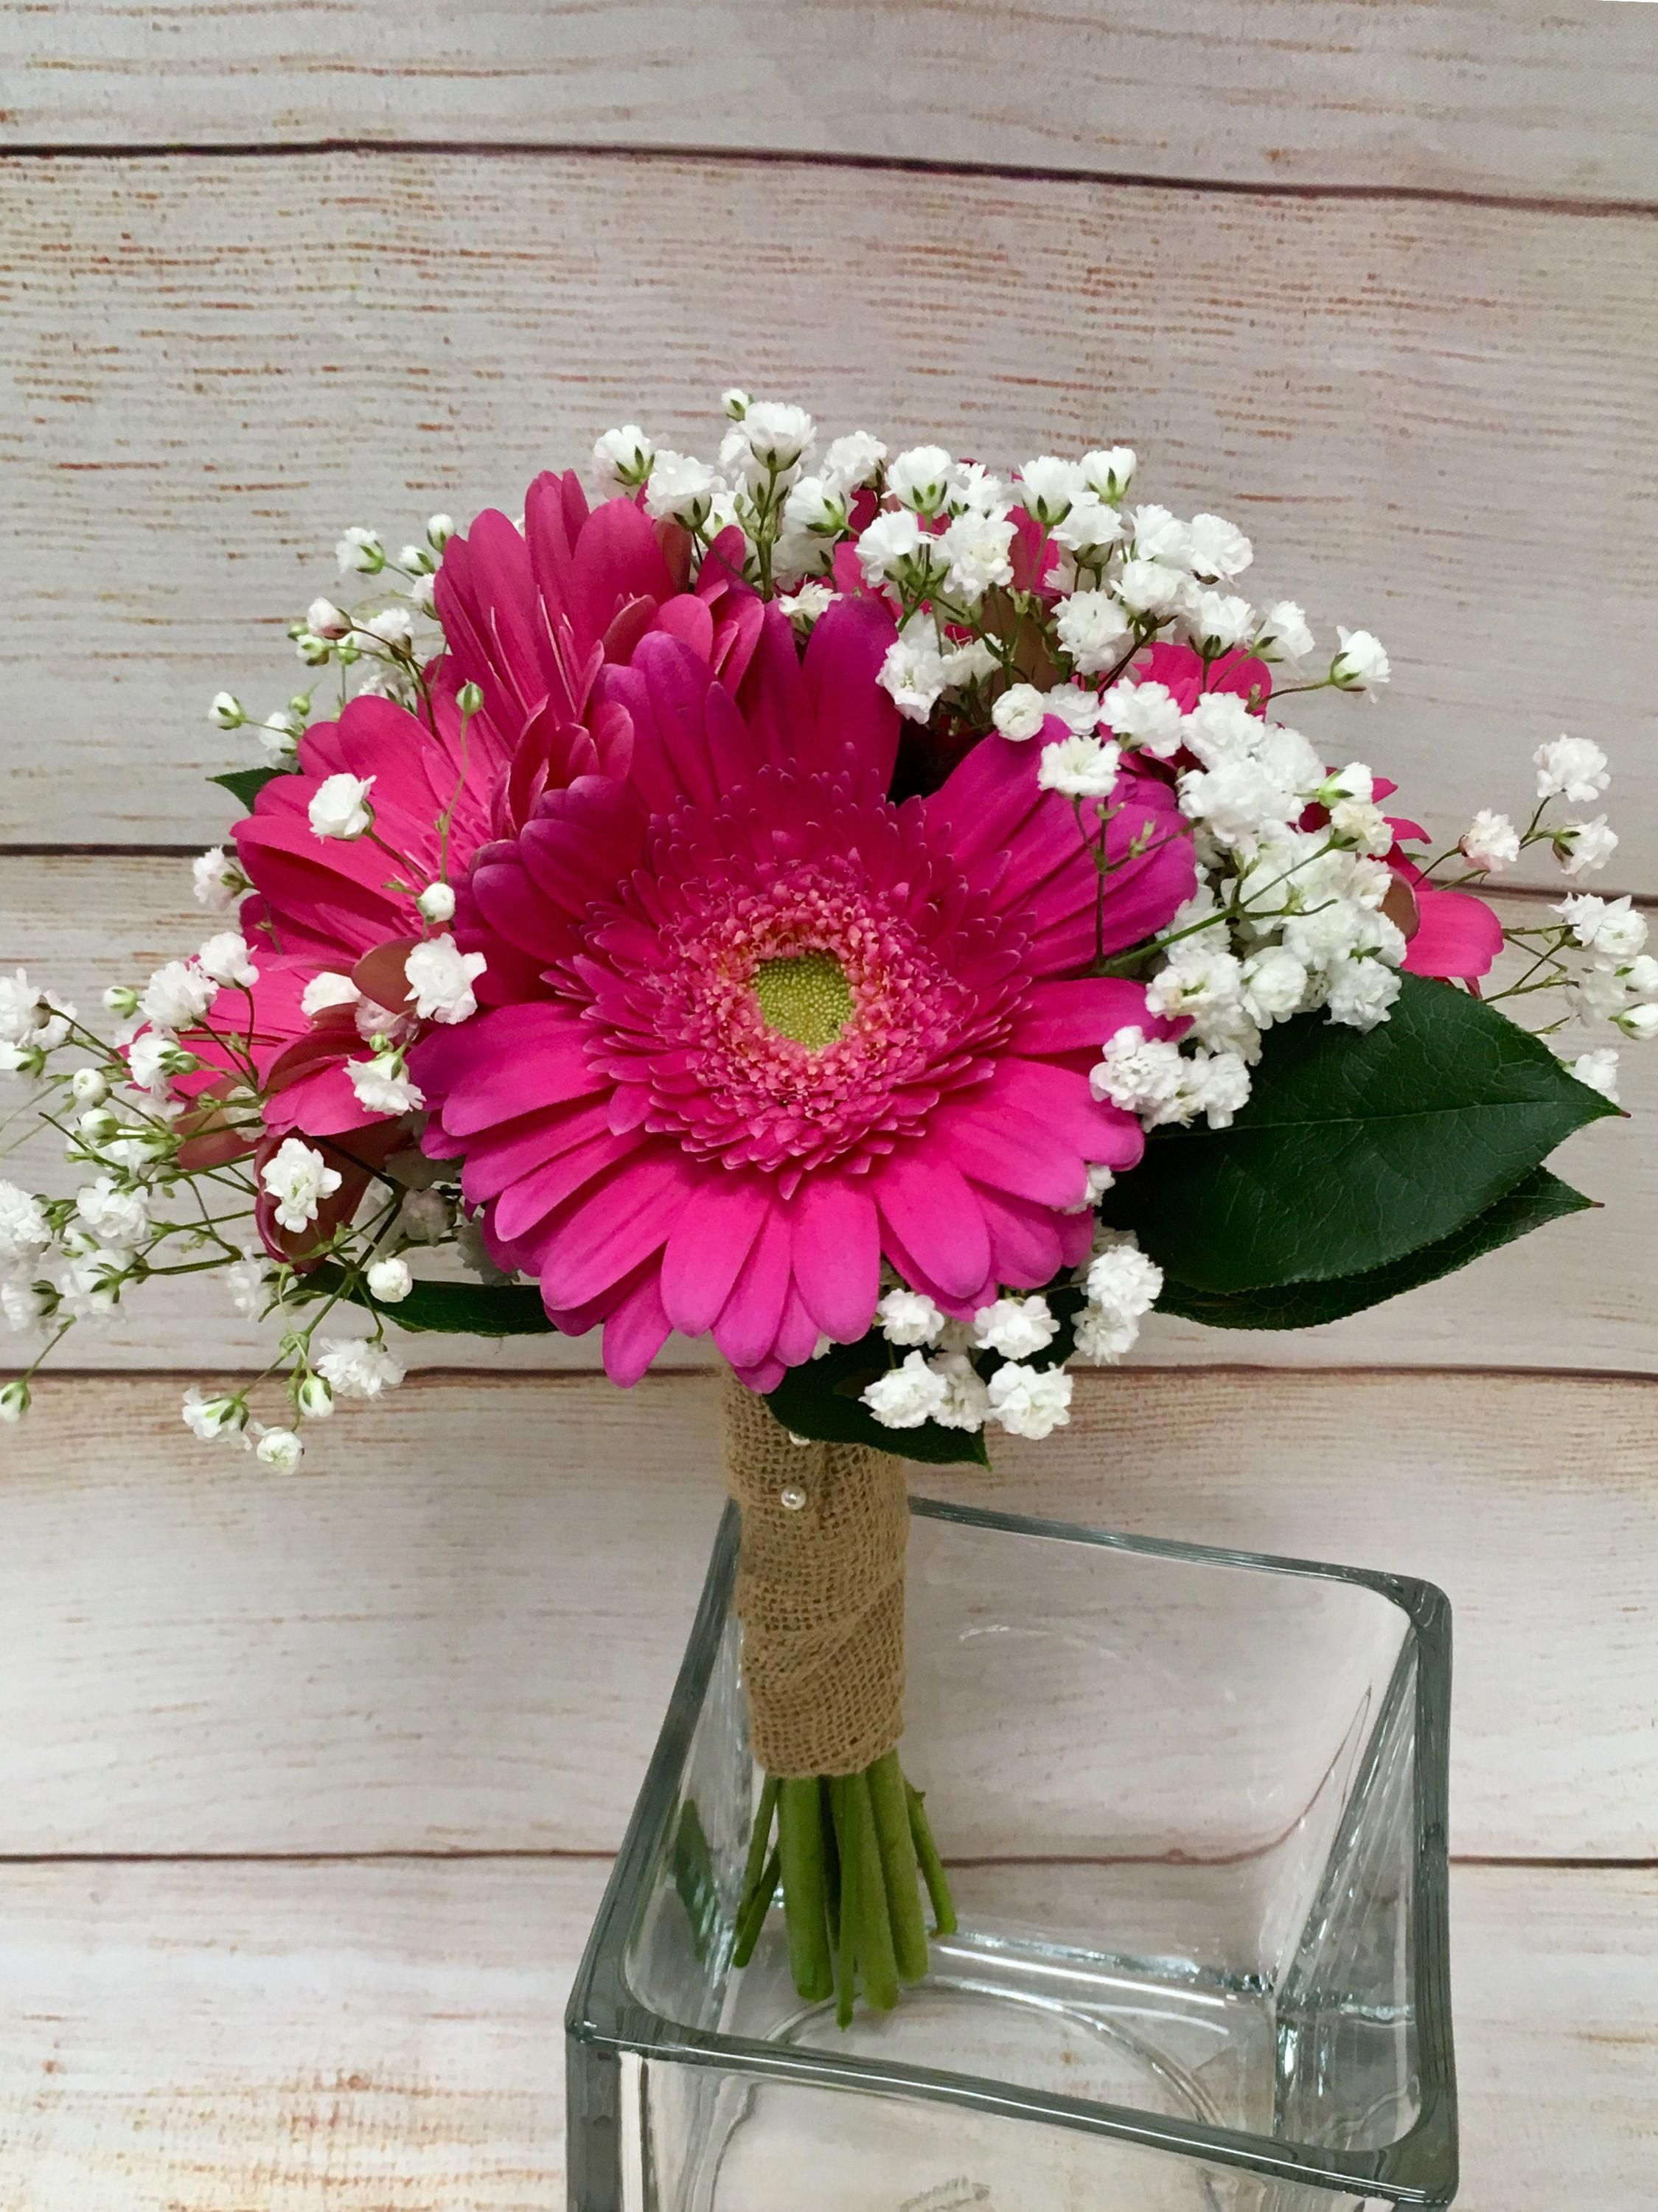 What About A Vibrant Hot Pink Gerbera Daisy Bouquet For Your Fun